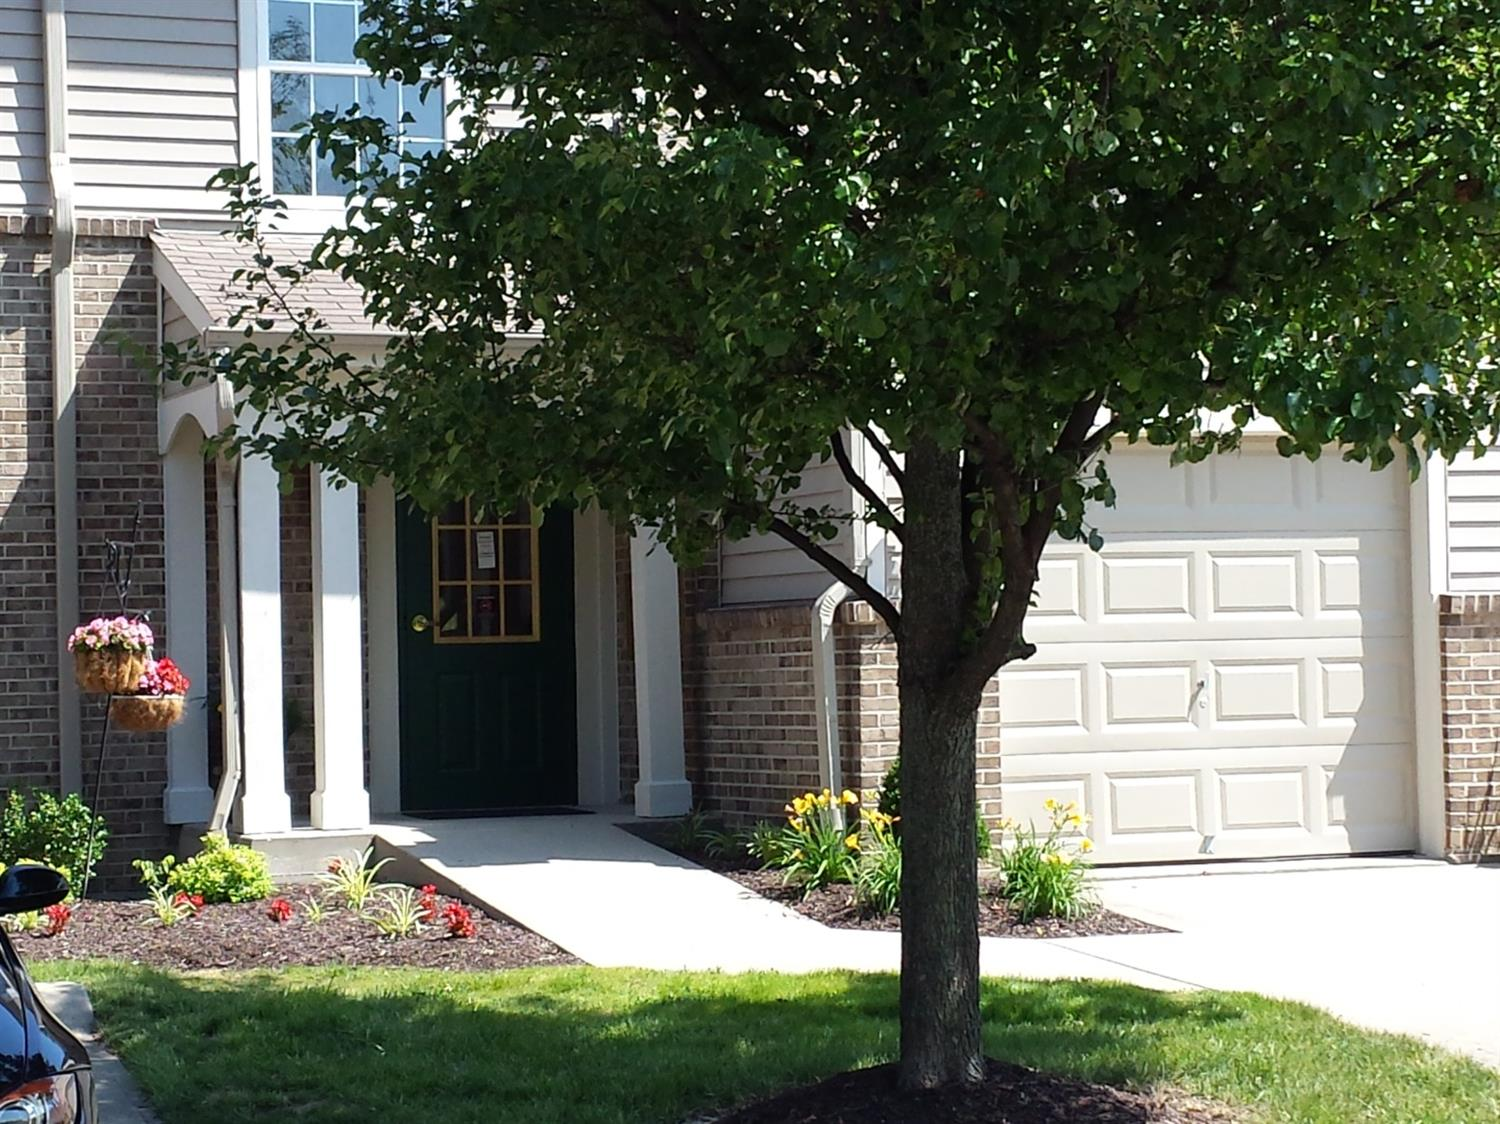 Property for sale at 6223 Watchcreek Way Unit: 104, Milford,  Ohio 45150